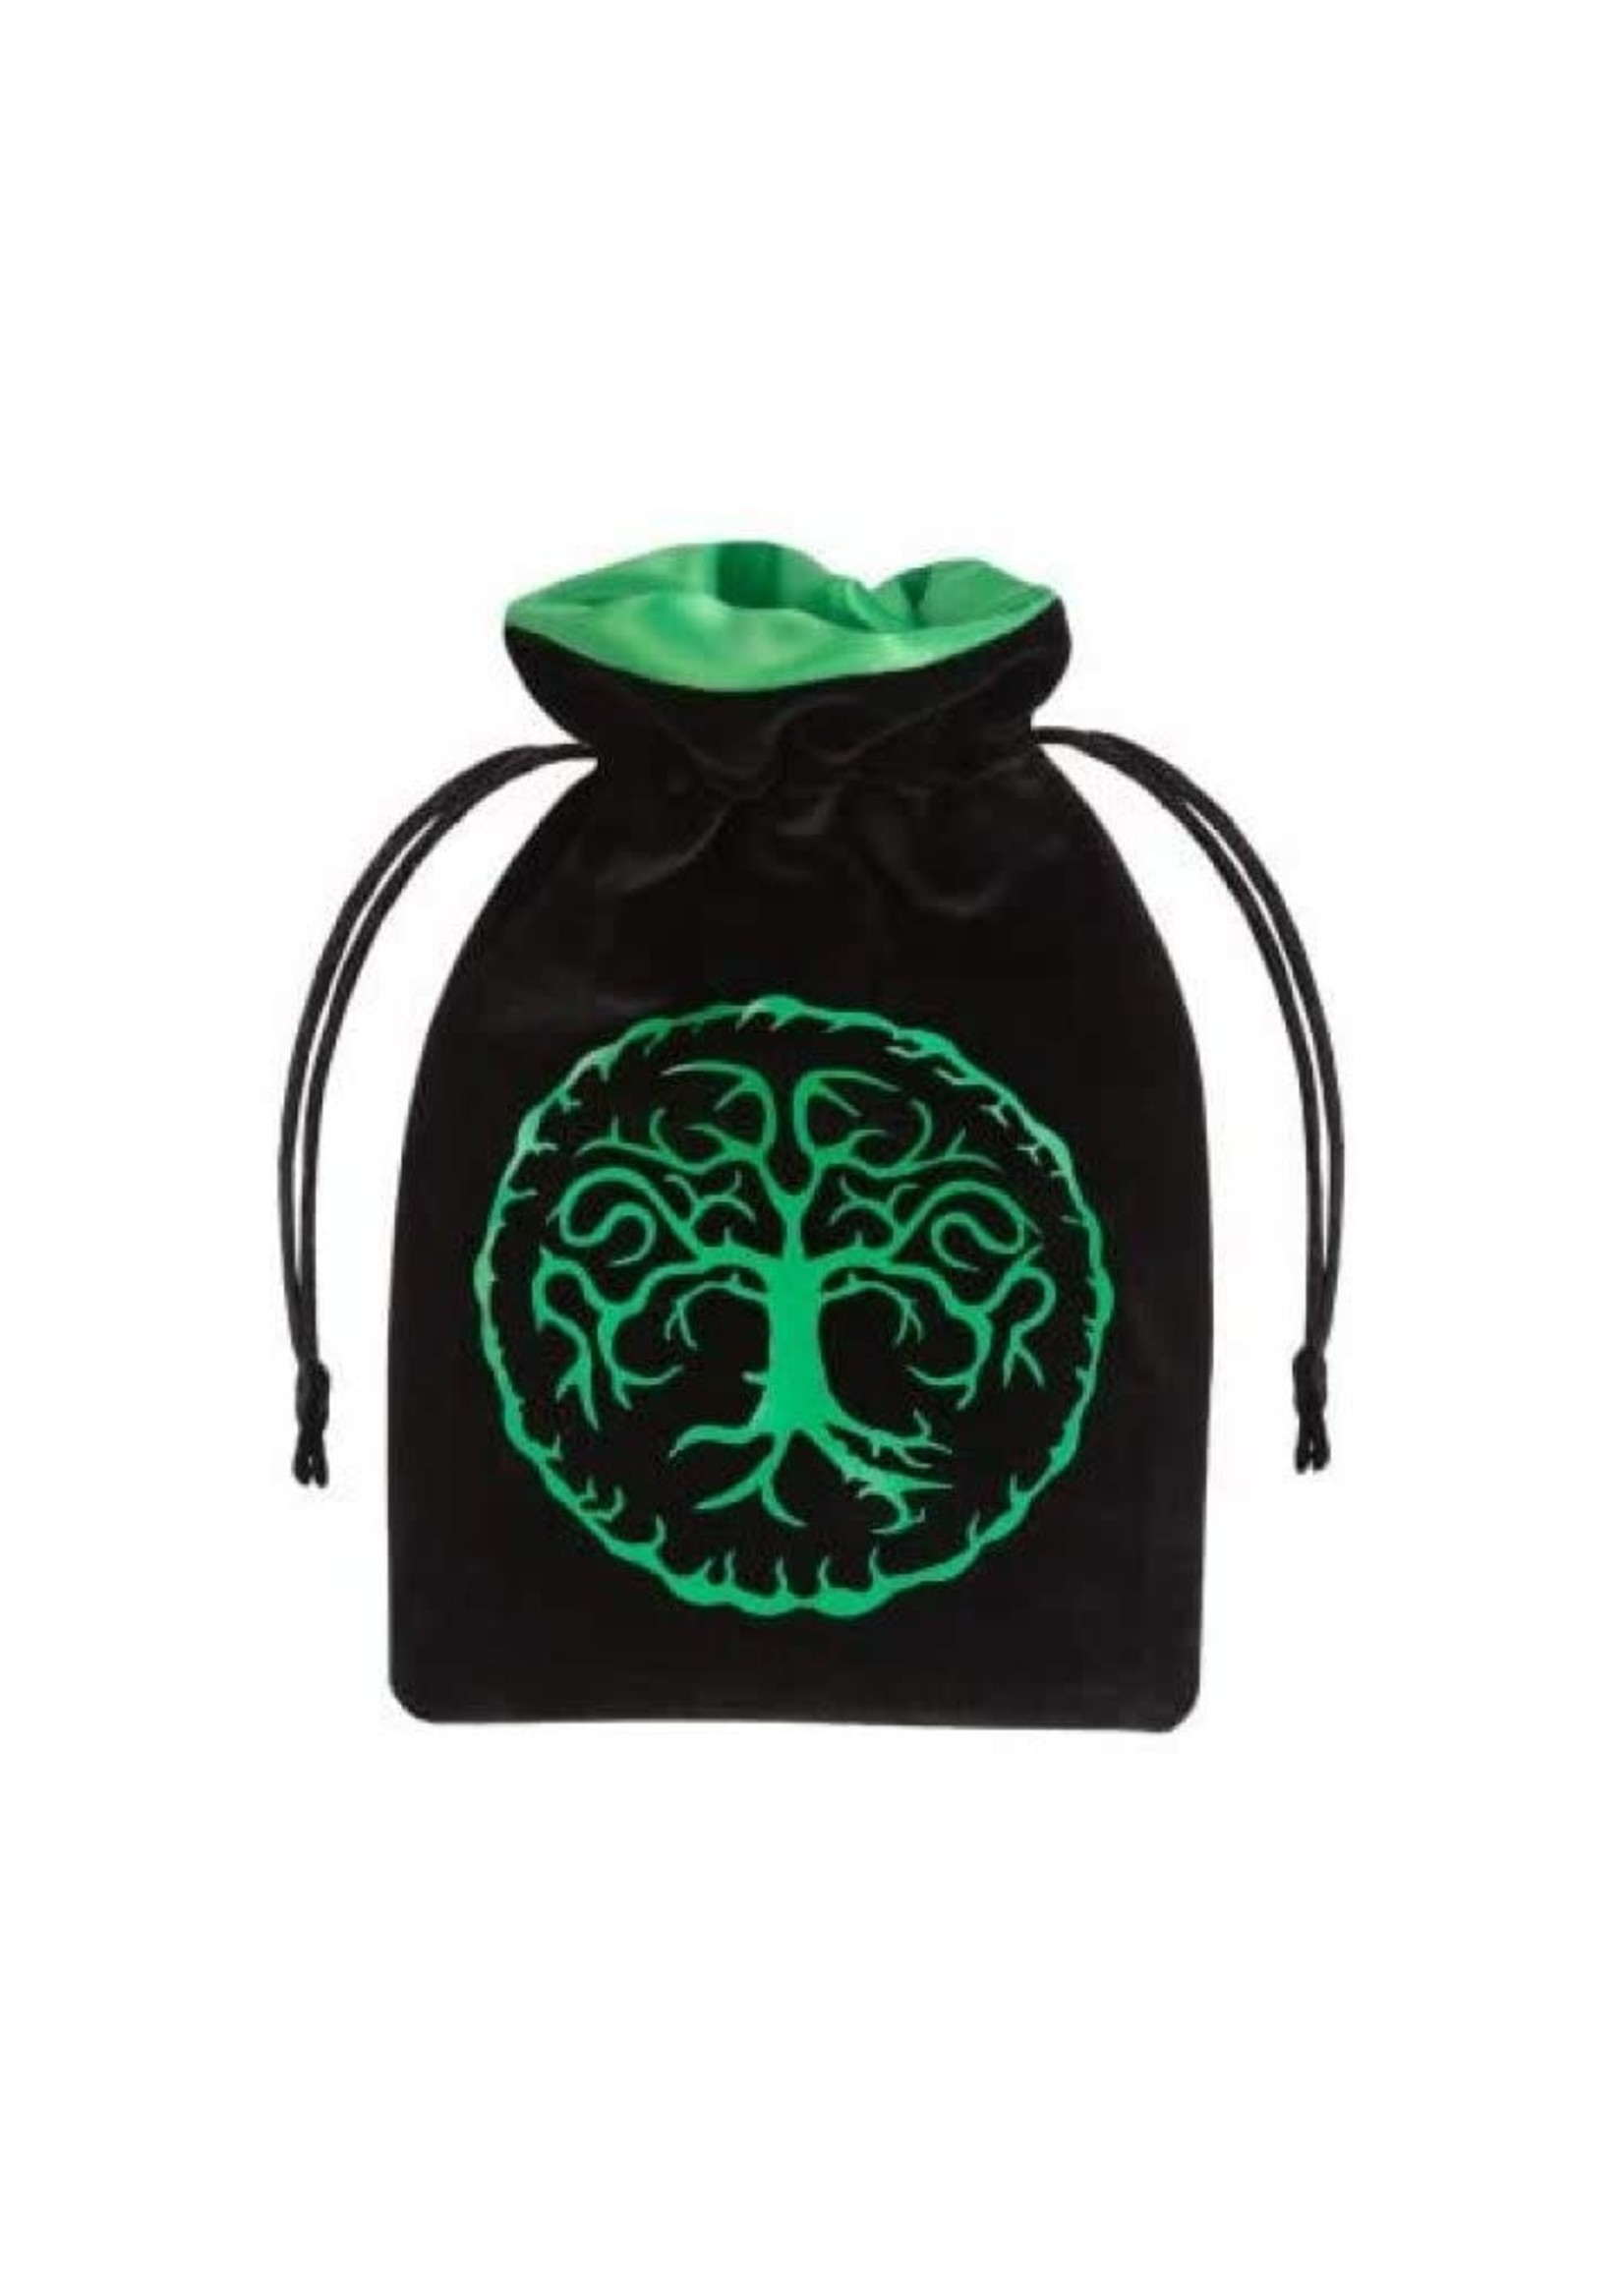 Dice Bag Black And Green Velour